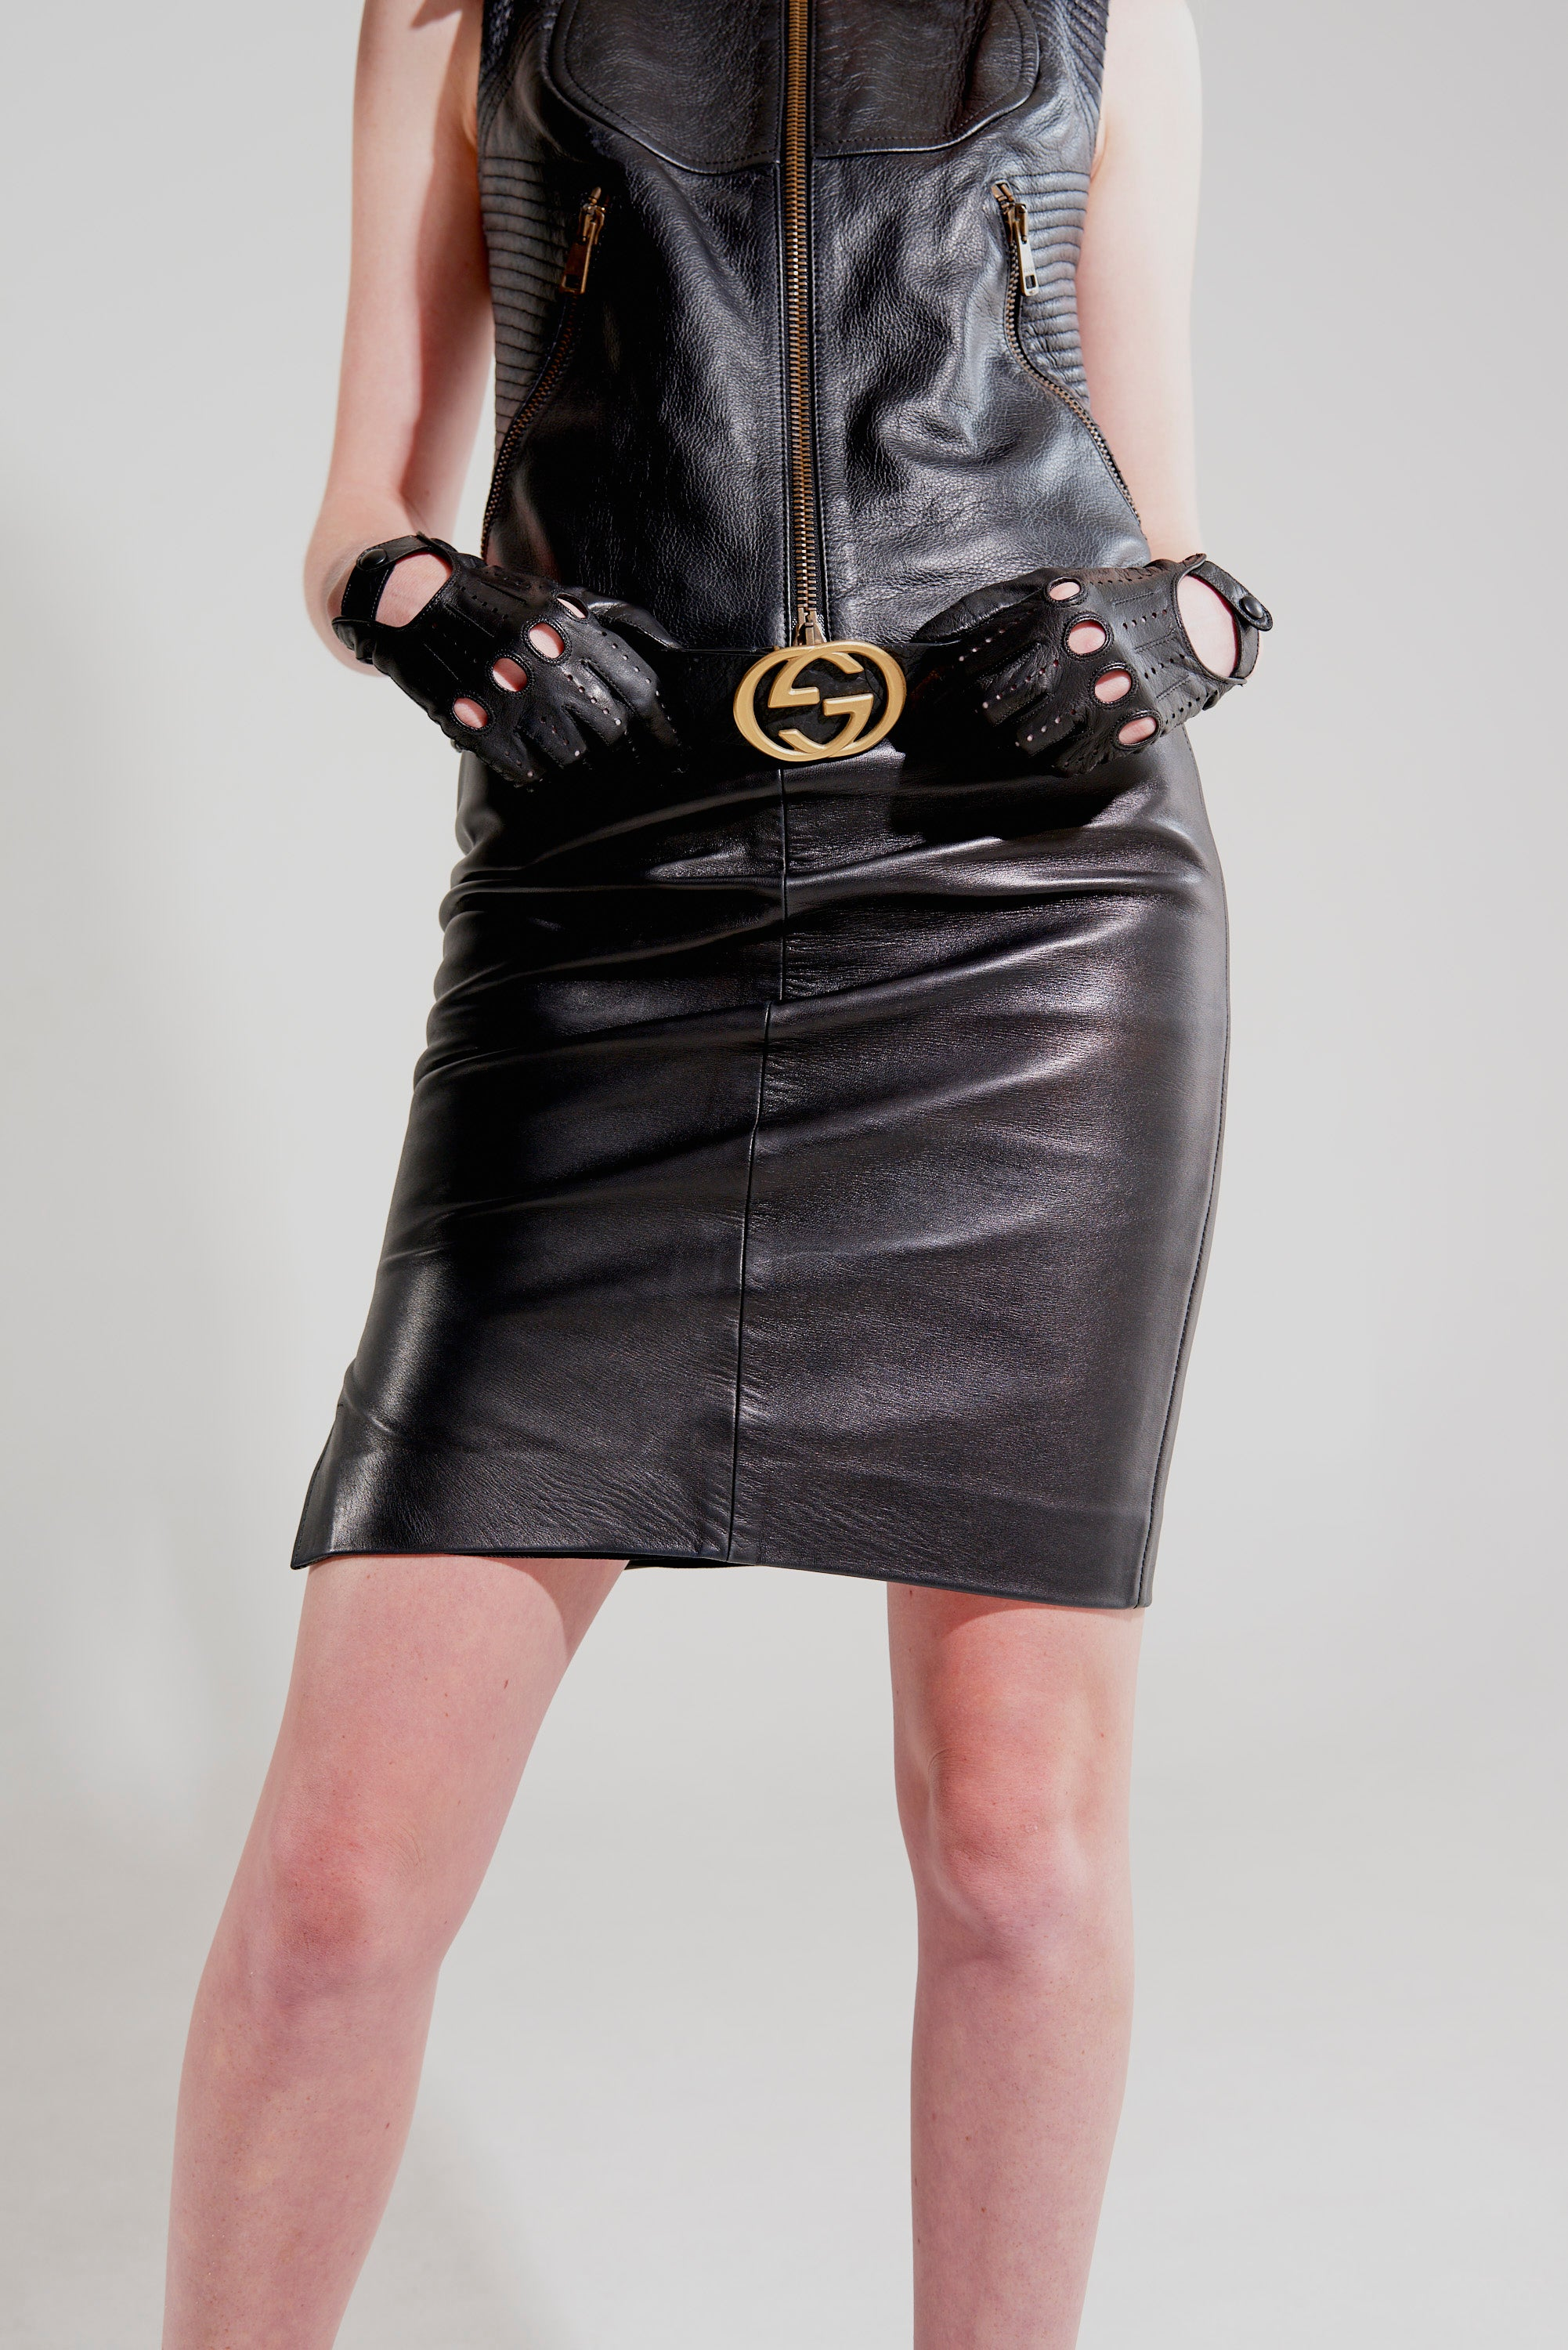 Gucci <br> 90's Tom Ford leather pencil skirt